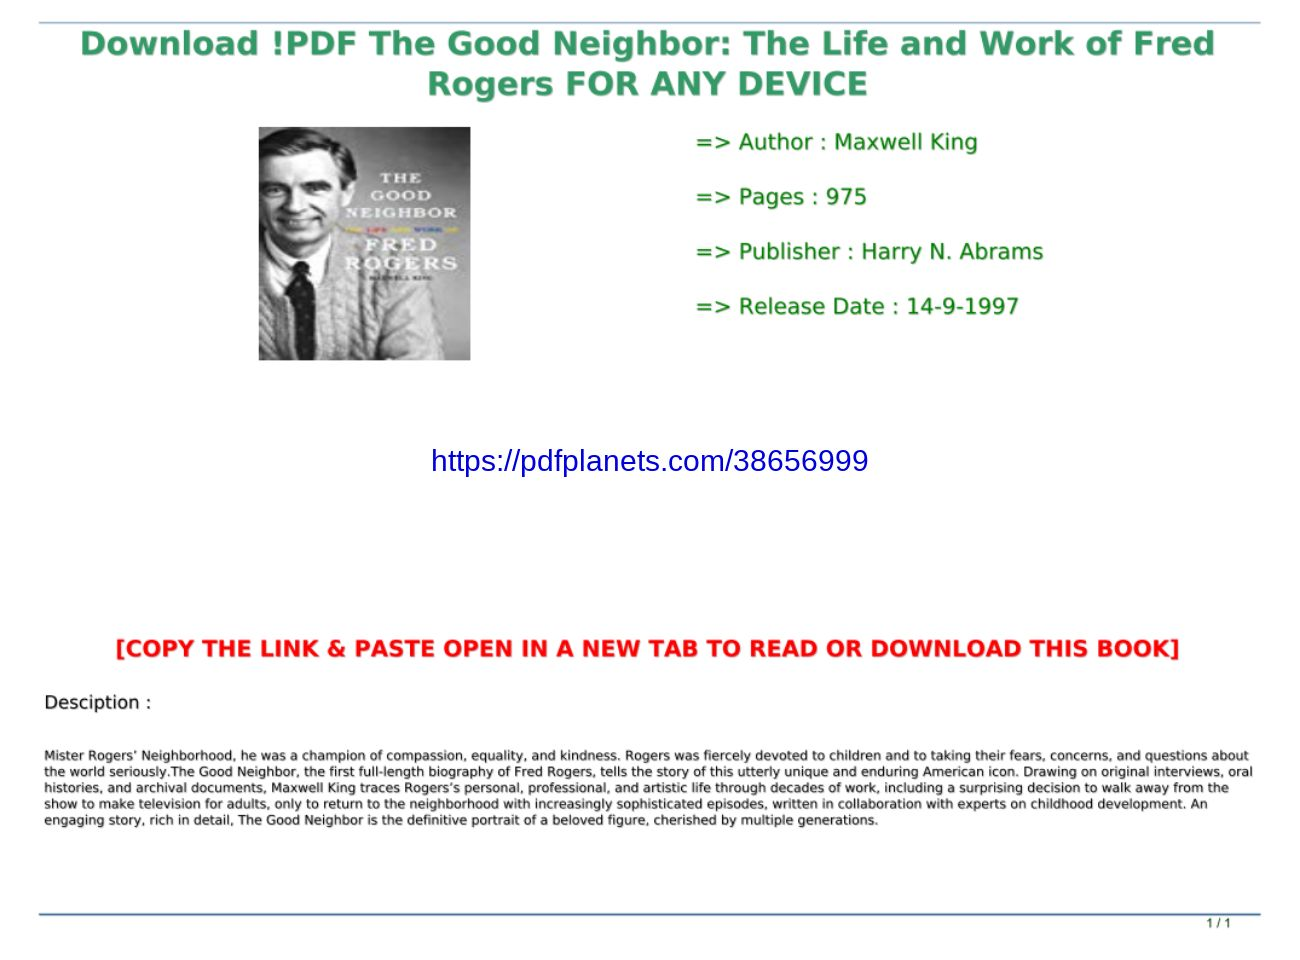 Download Pdf The Good Neighbor The Life And Work Of Fred Rogers For Any Device Text Images Music Video Glogster Edu Interactive Multimedia Posters